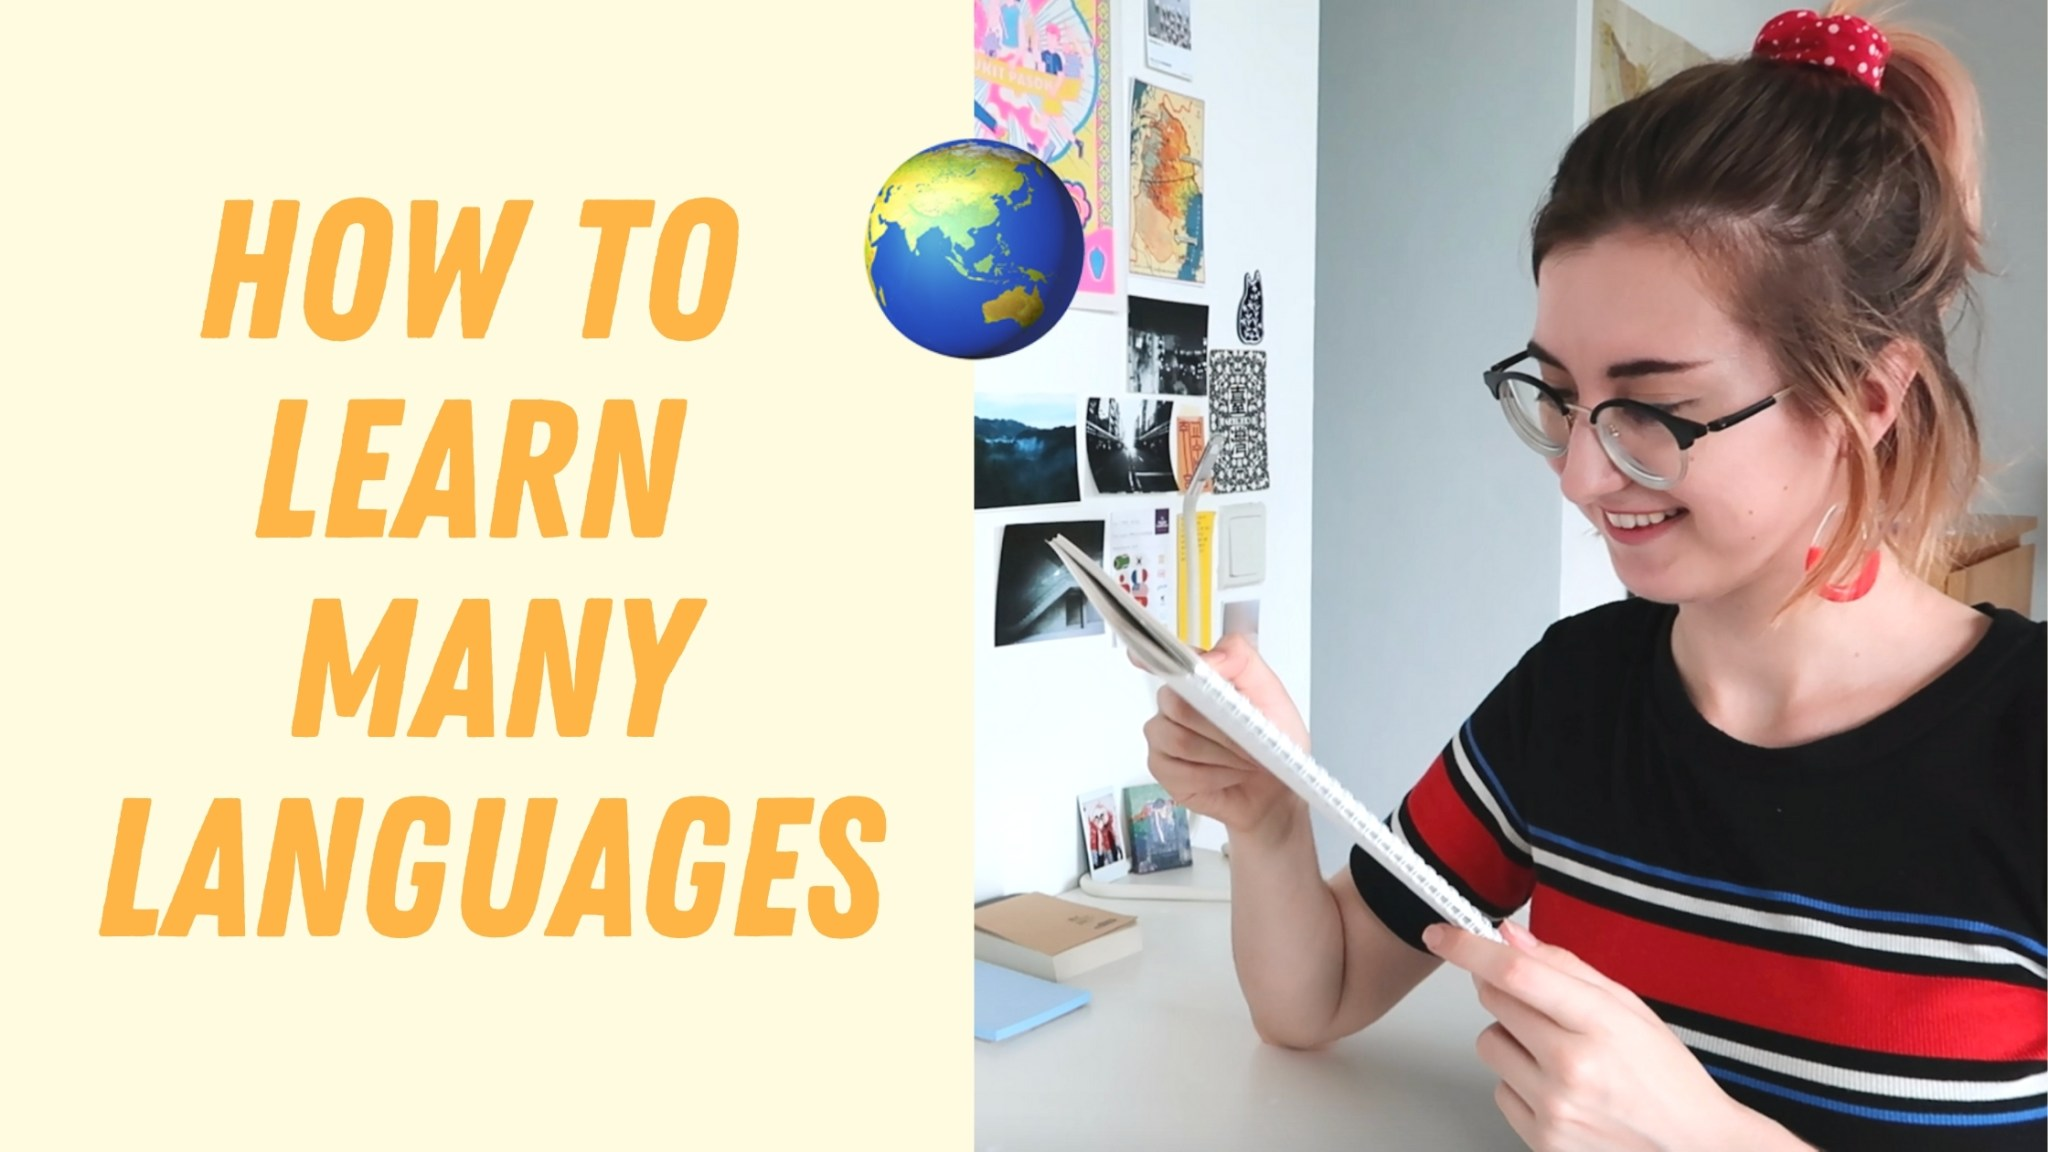 How to learn many languages